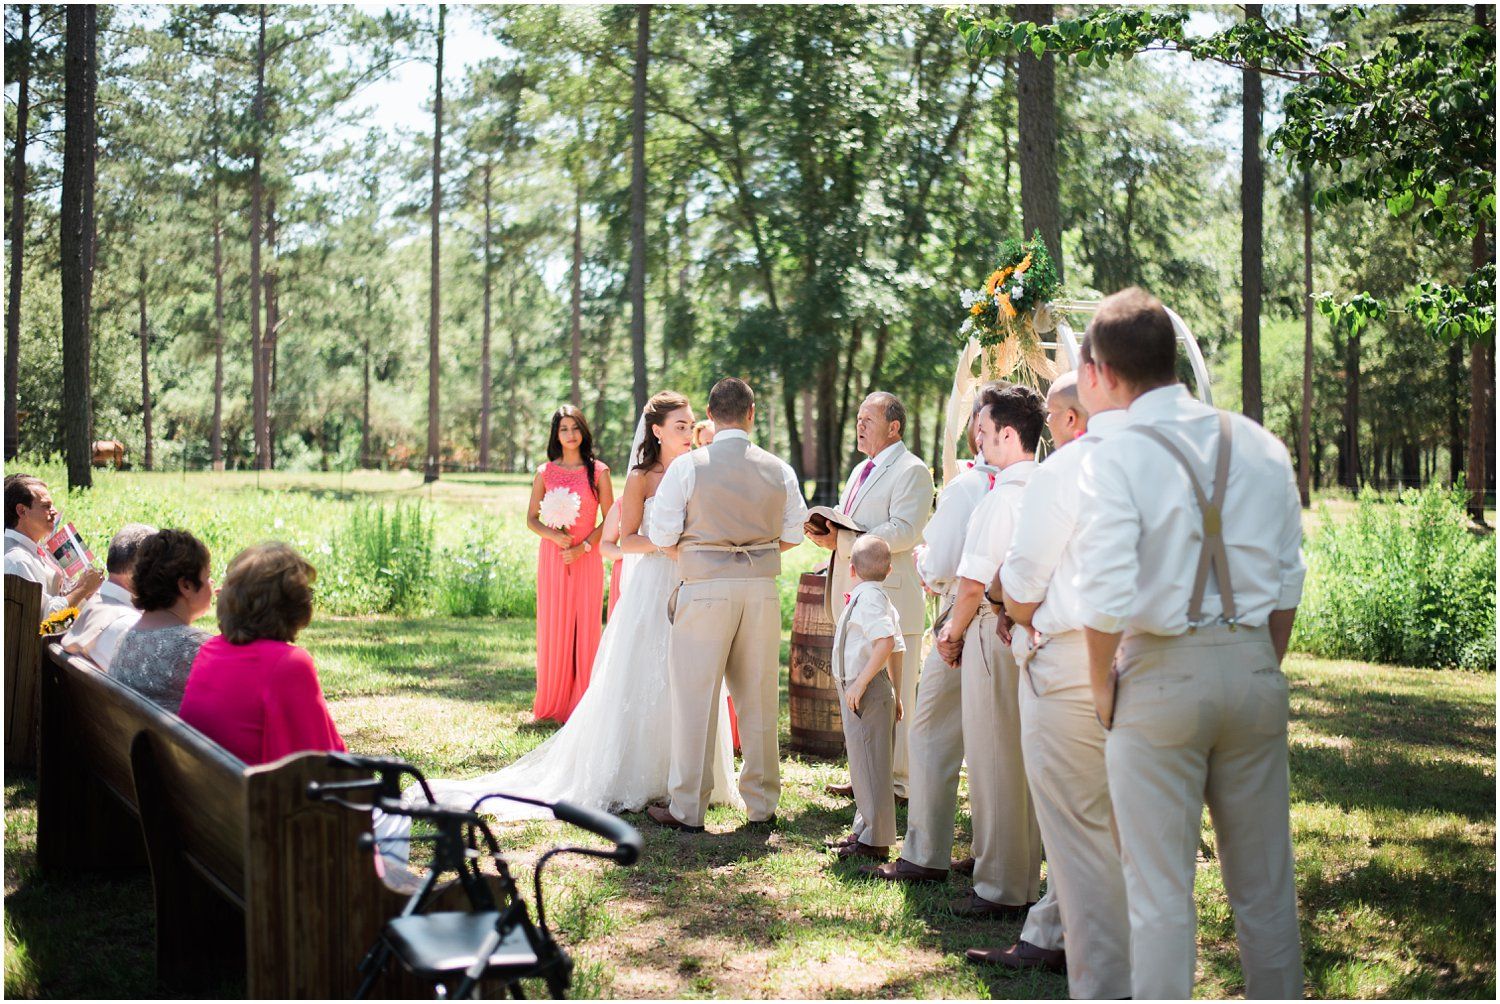 Kyle and Haley Wedding day at Loblolly Rise Plantation, Thomasville Georgia_0029.jpg